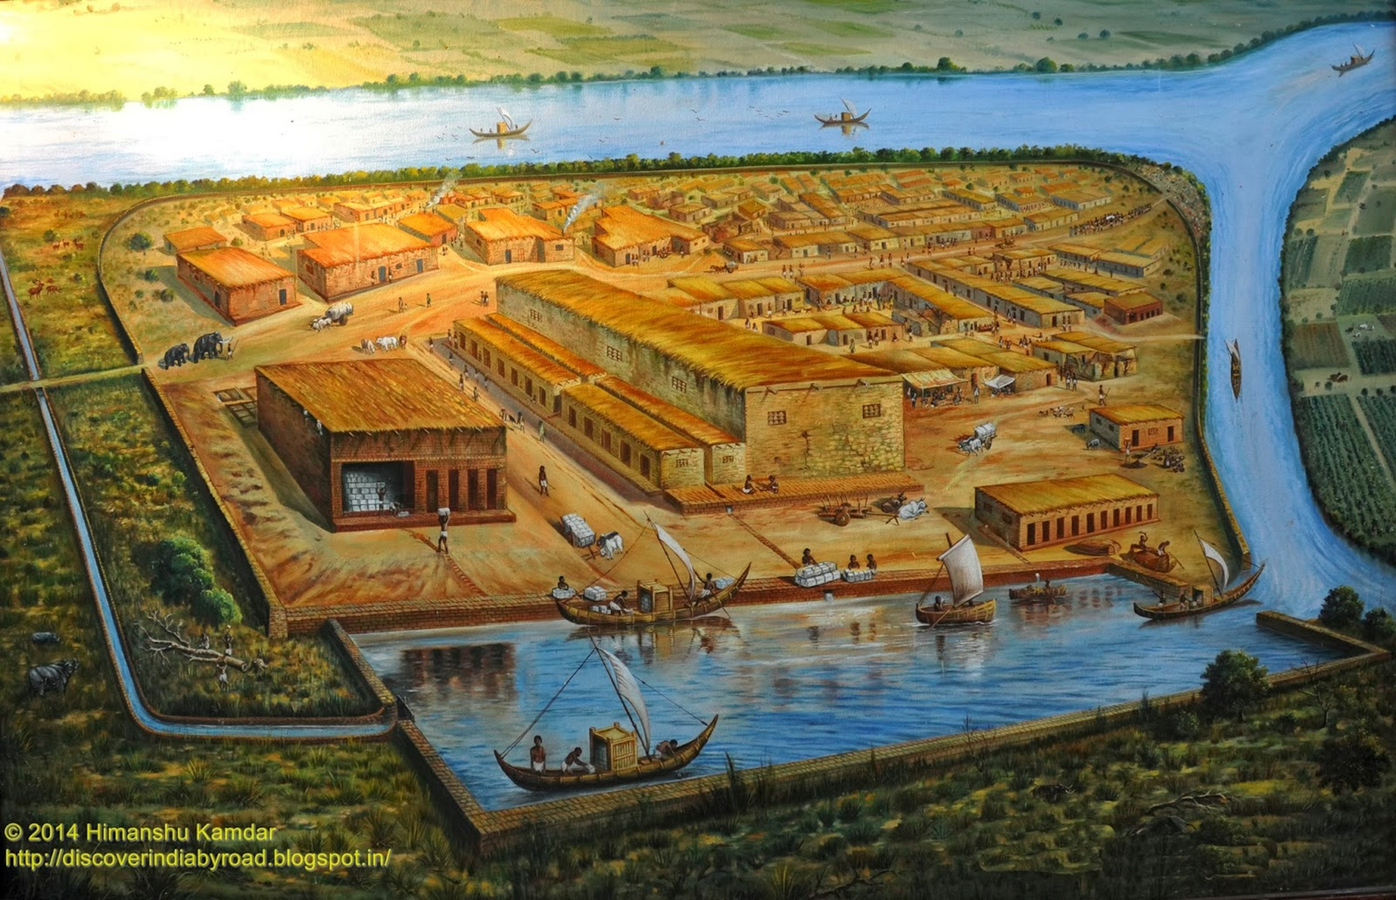 How water led to the evolution of architecture in ancient India - Sheet1